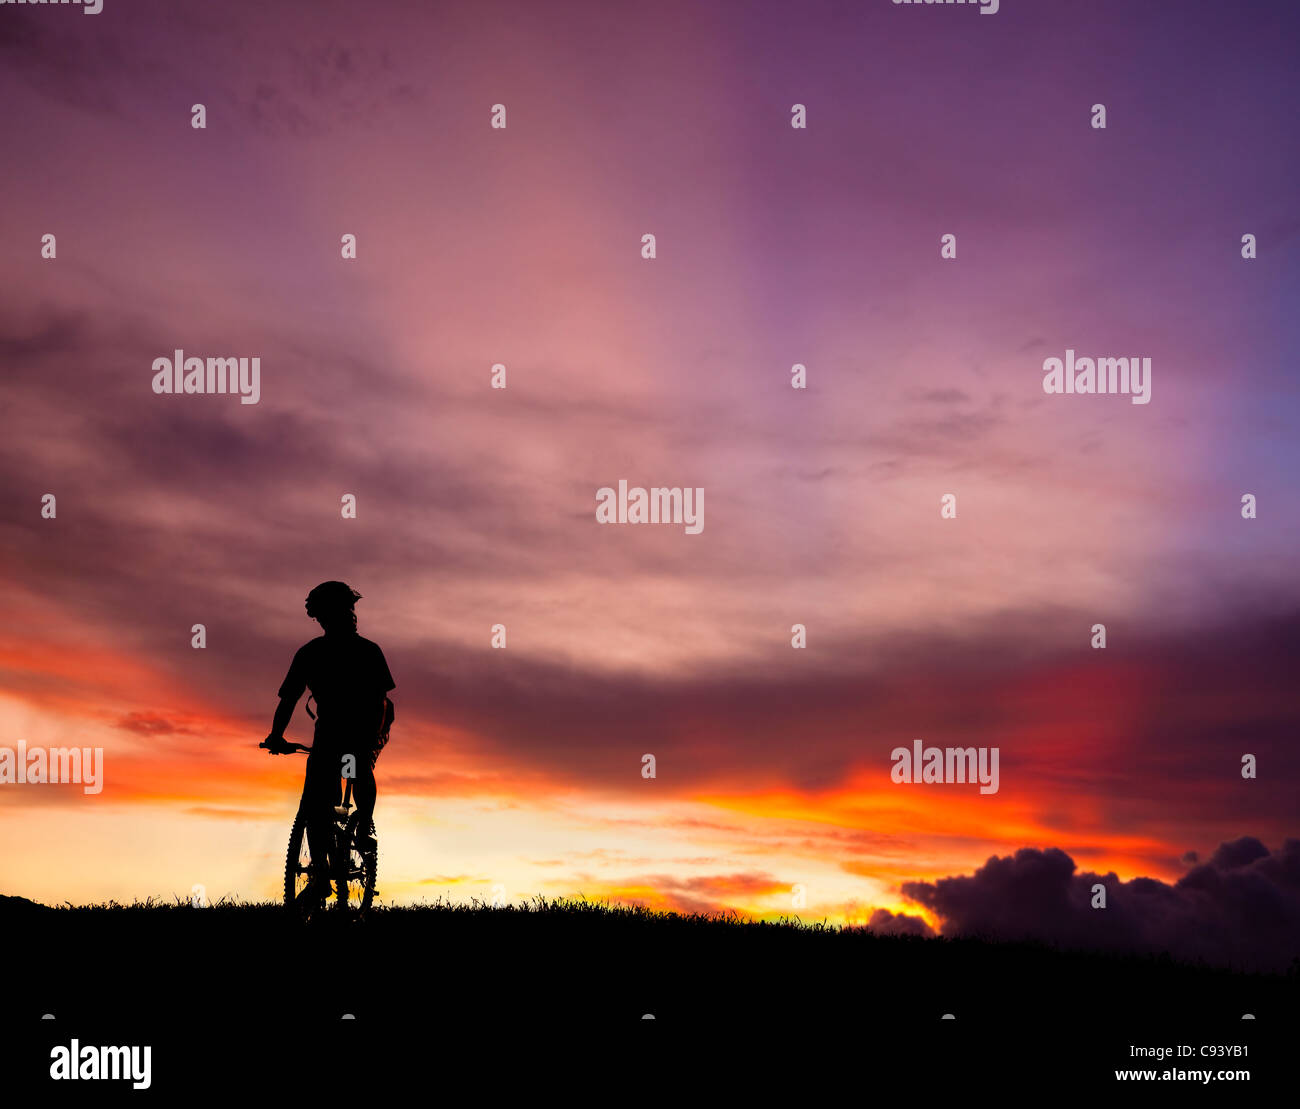 The silhouette of mountain bicycle rider on the hill with beautiful sunrise background - Stock Image